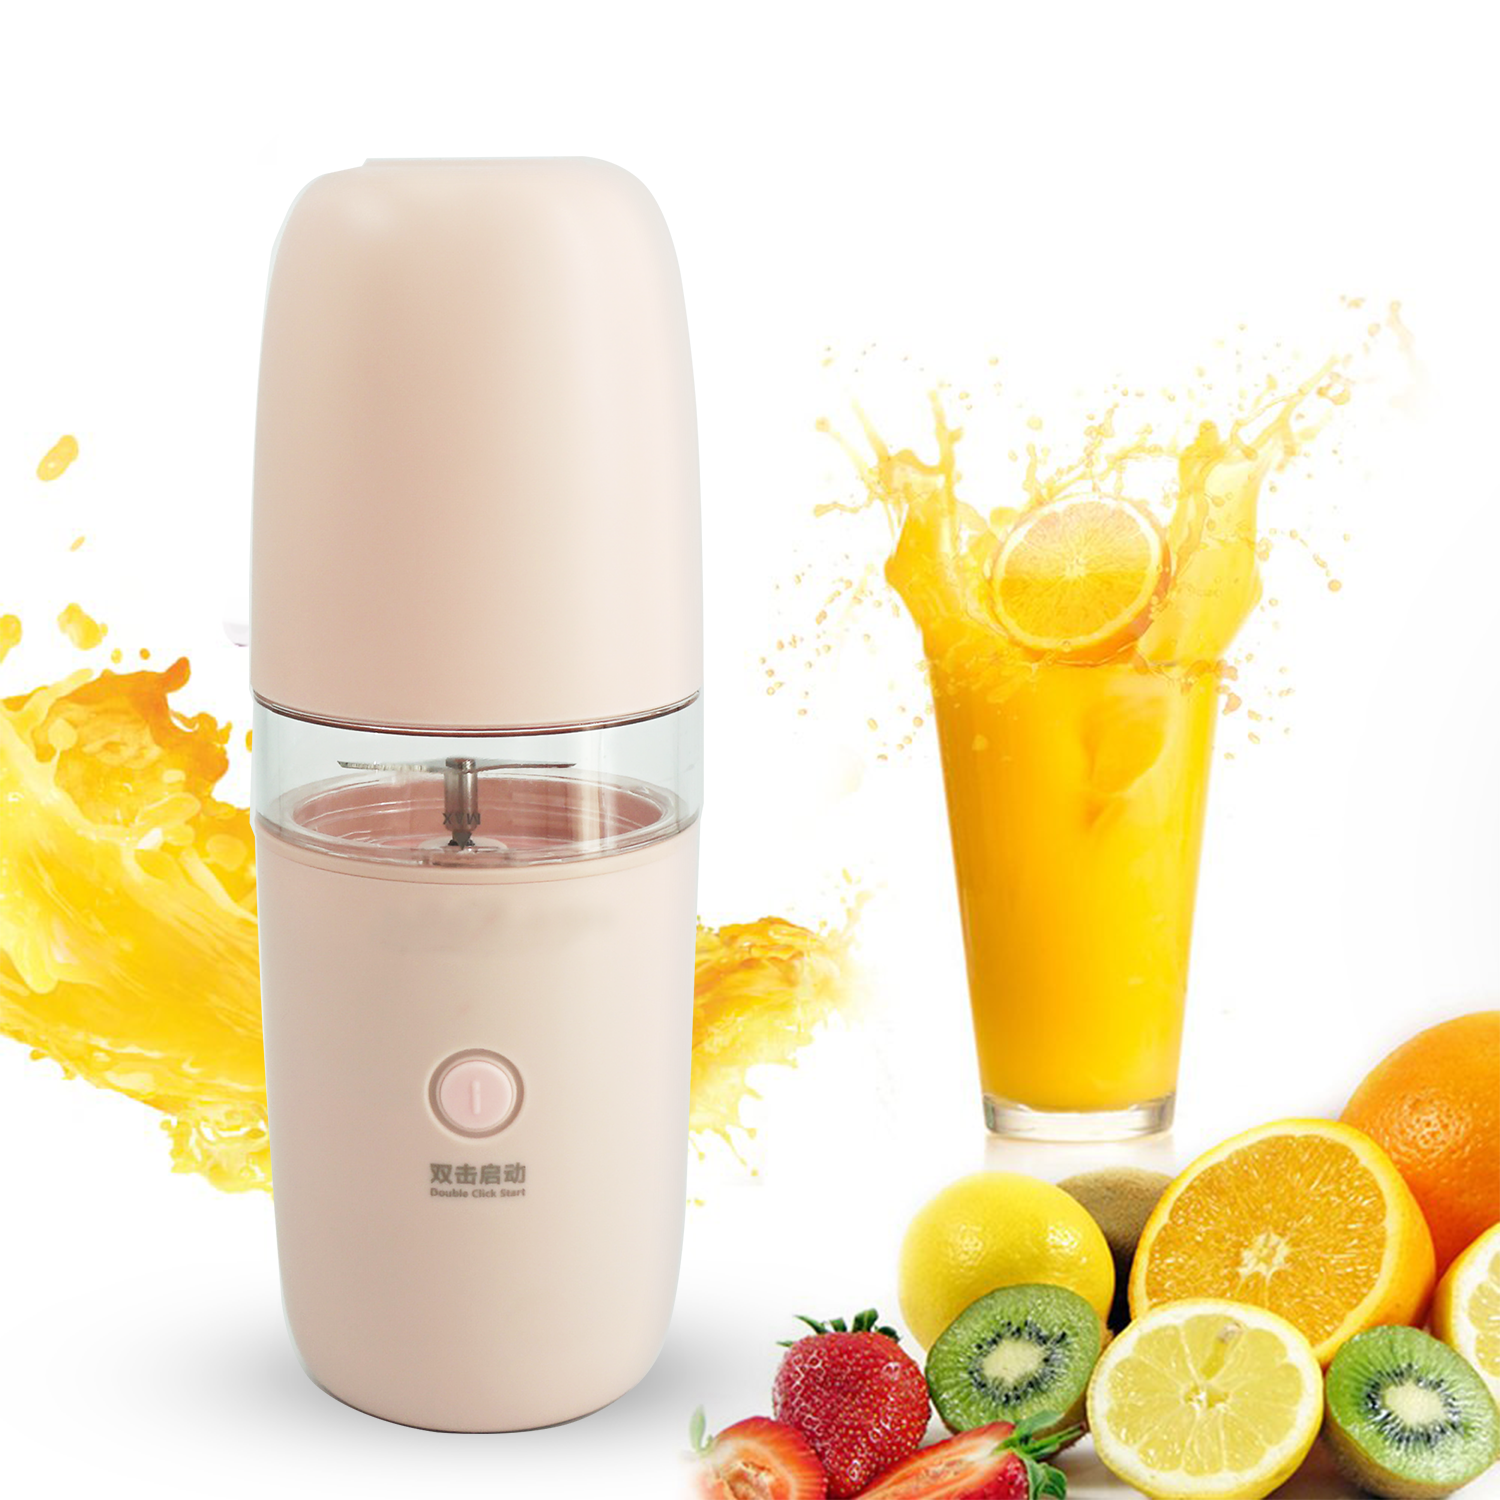 New design high quality Convenient battery Mini portable fruit blender professional electric <strong>citrus</strong> pomegranate <strong>juicer</strong>